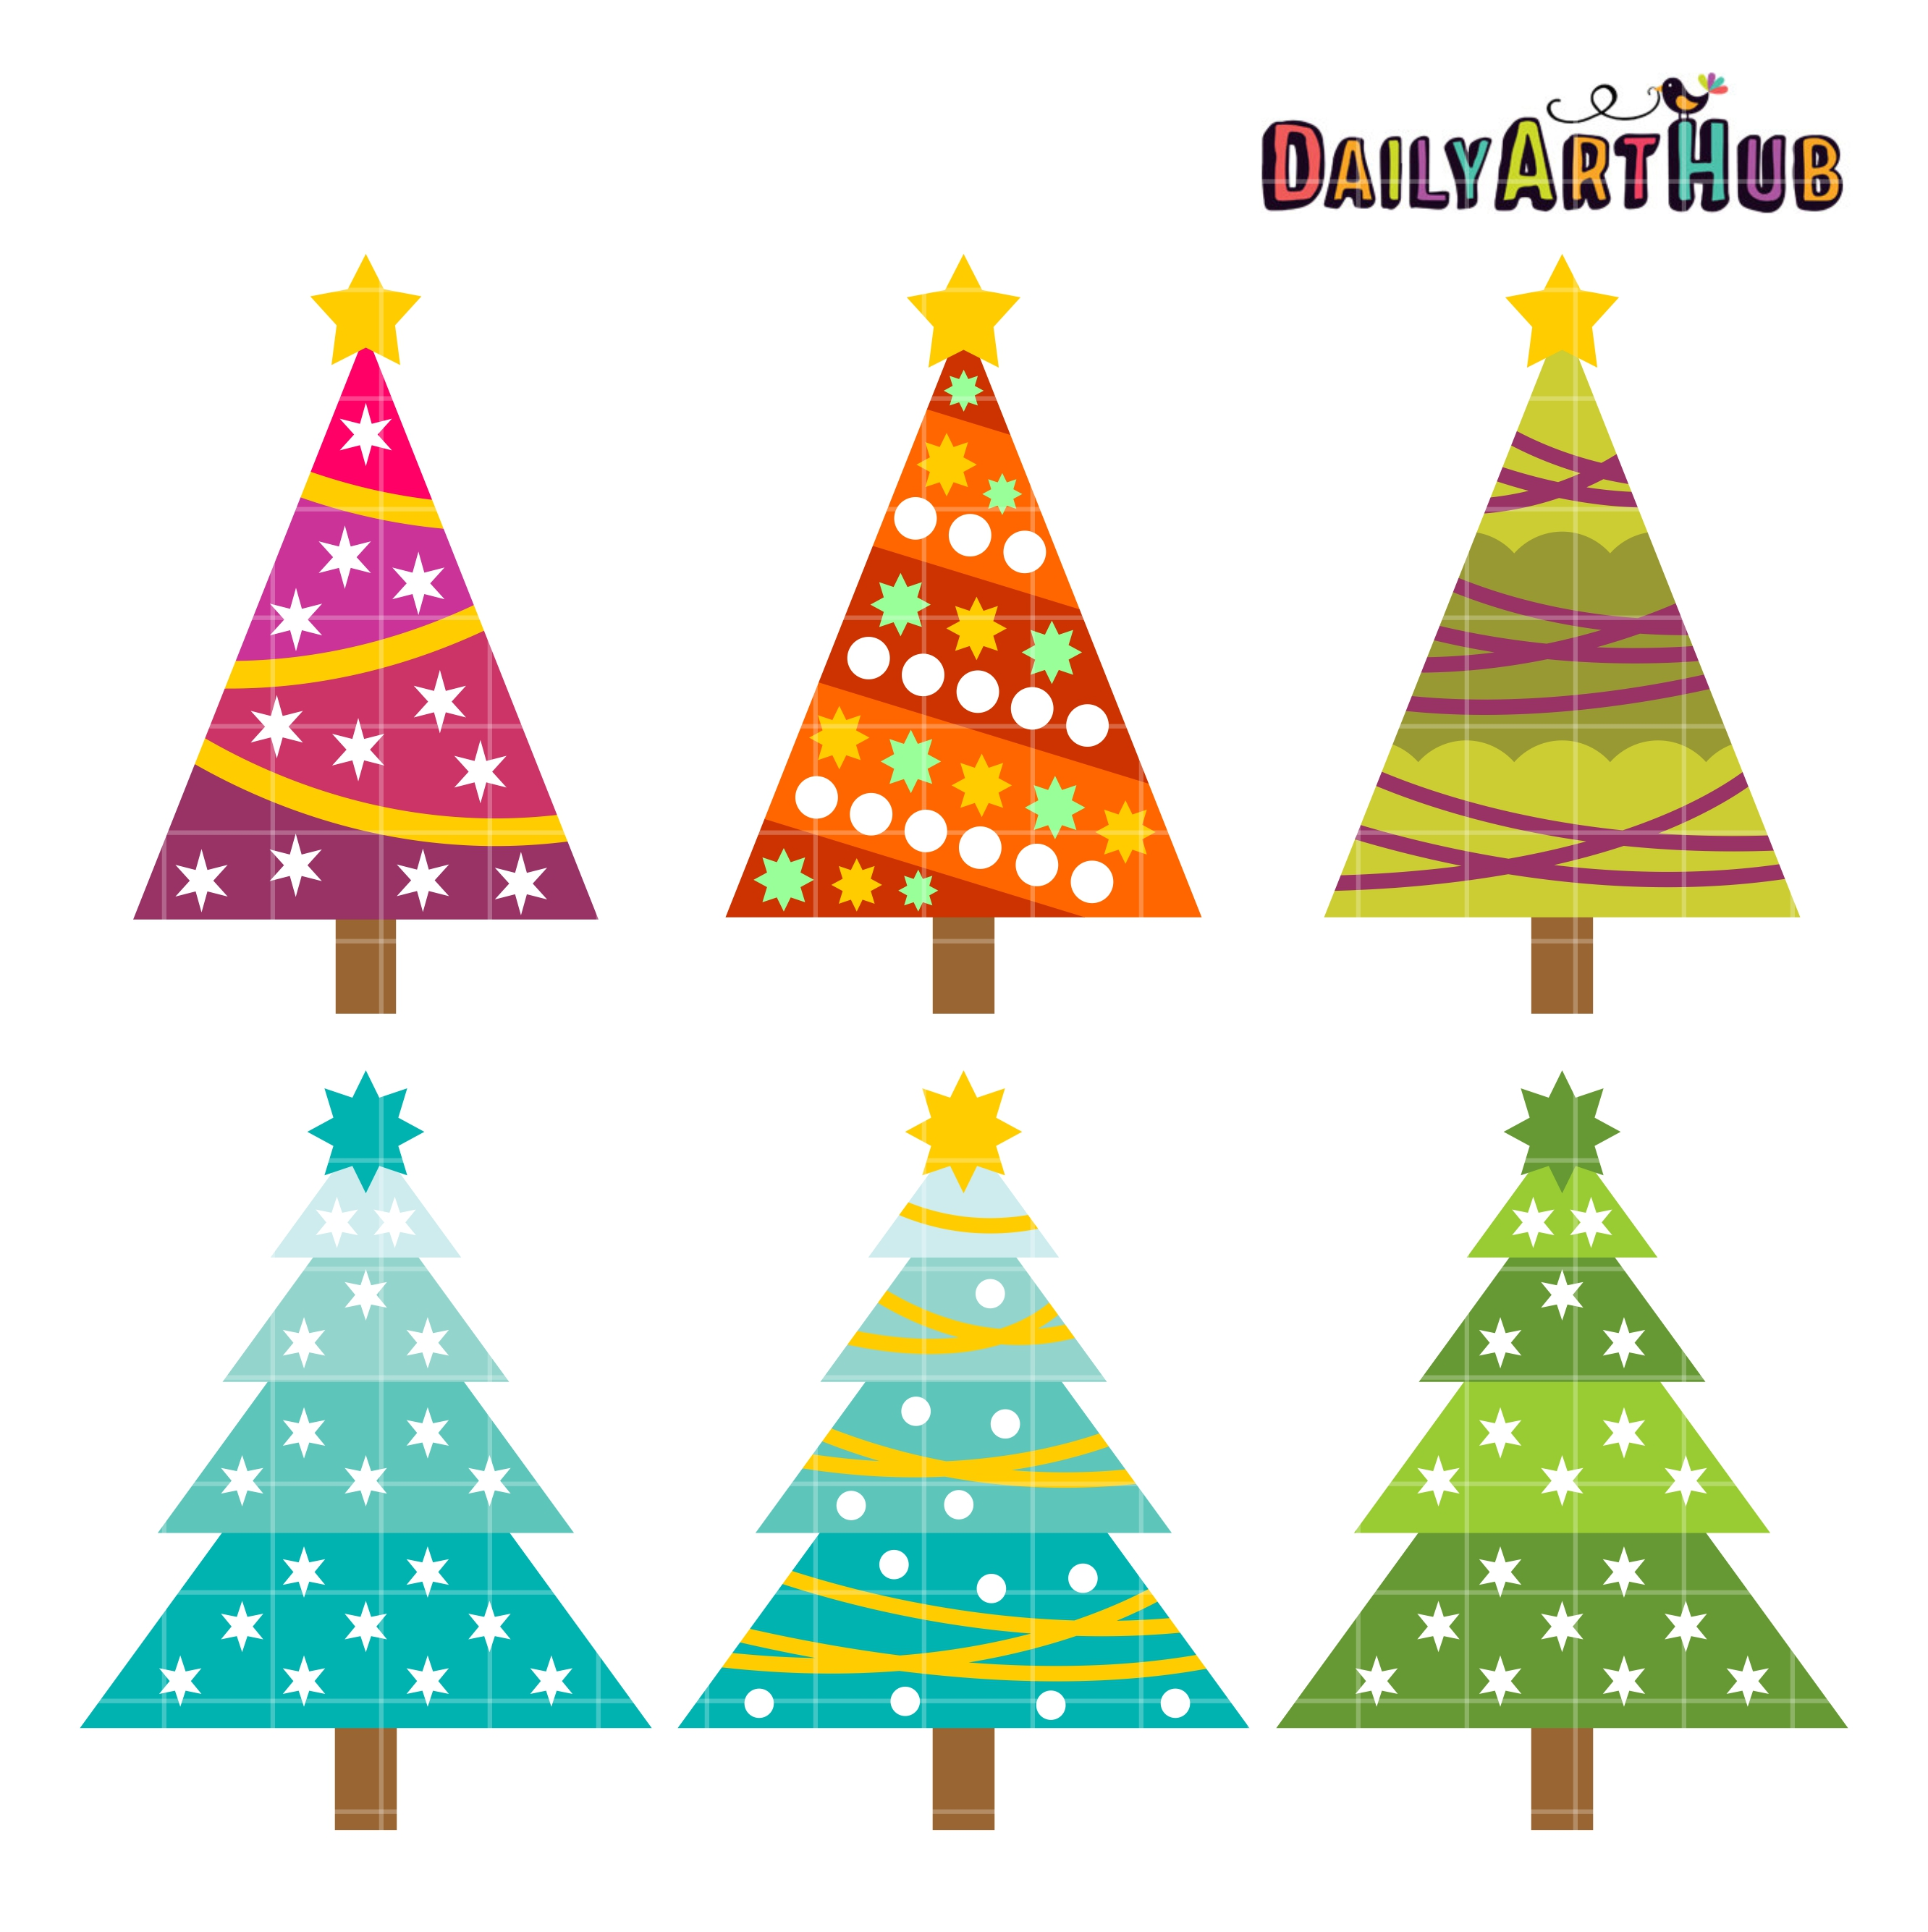 Retro Christmas Trees Clip Art Set | Daily Art Hub